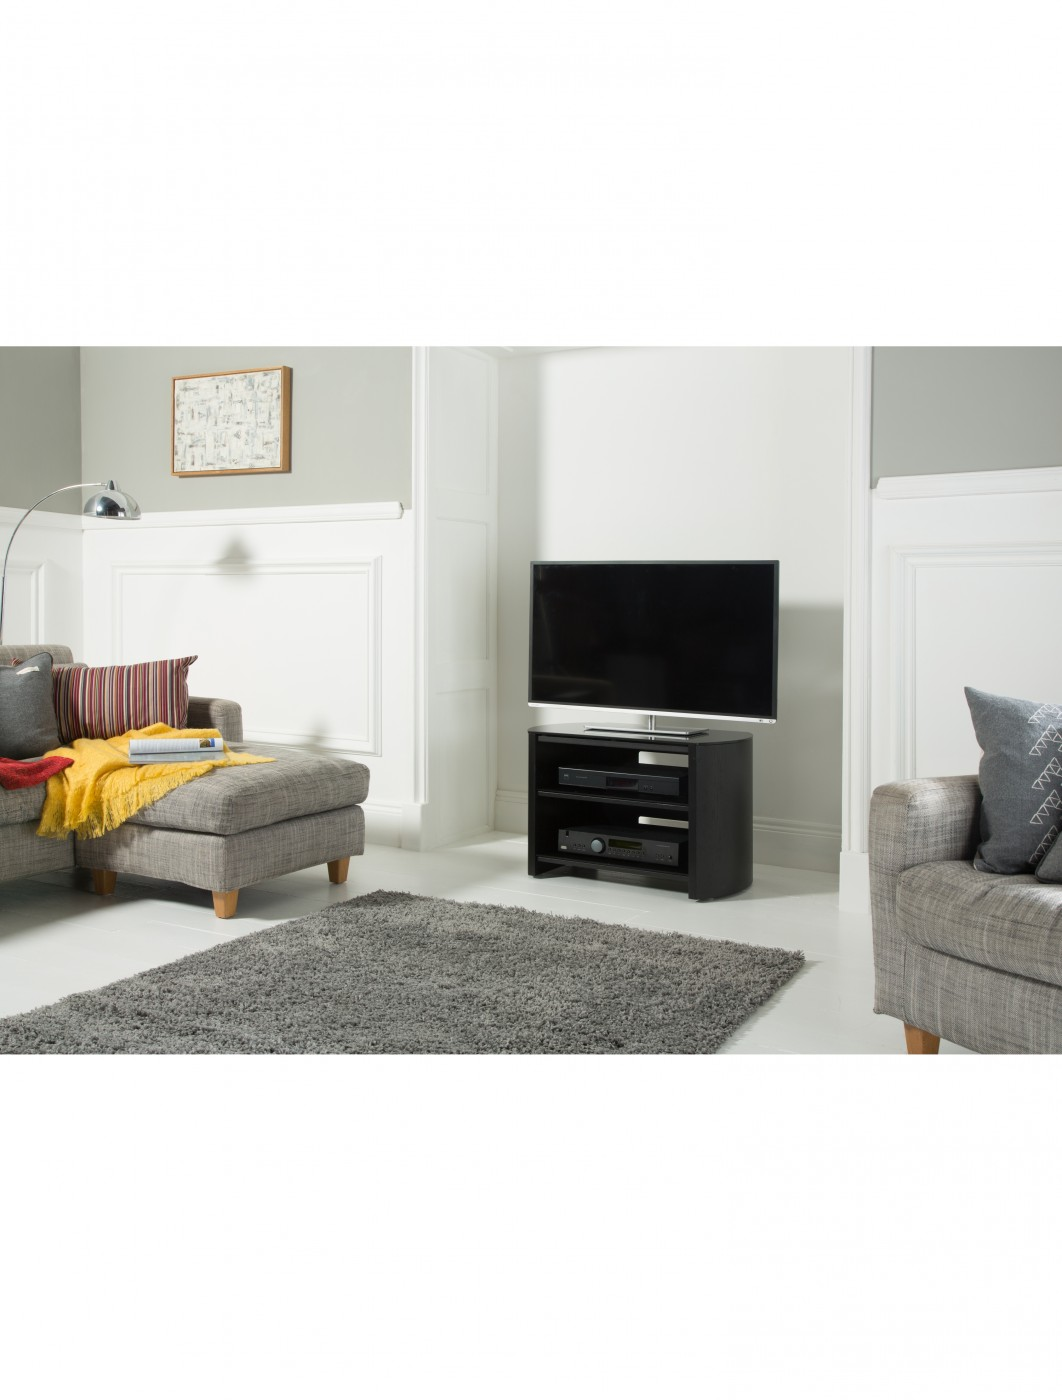 Alphason FW750-BV/B Finewoods TV Stand